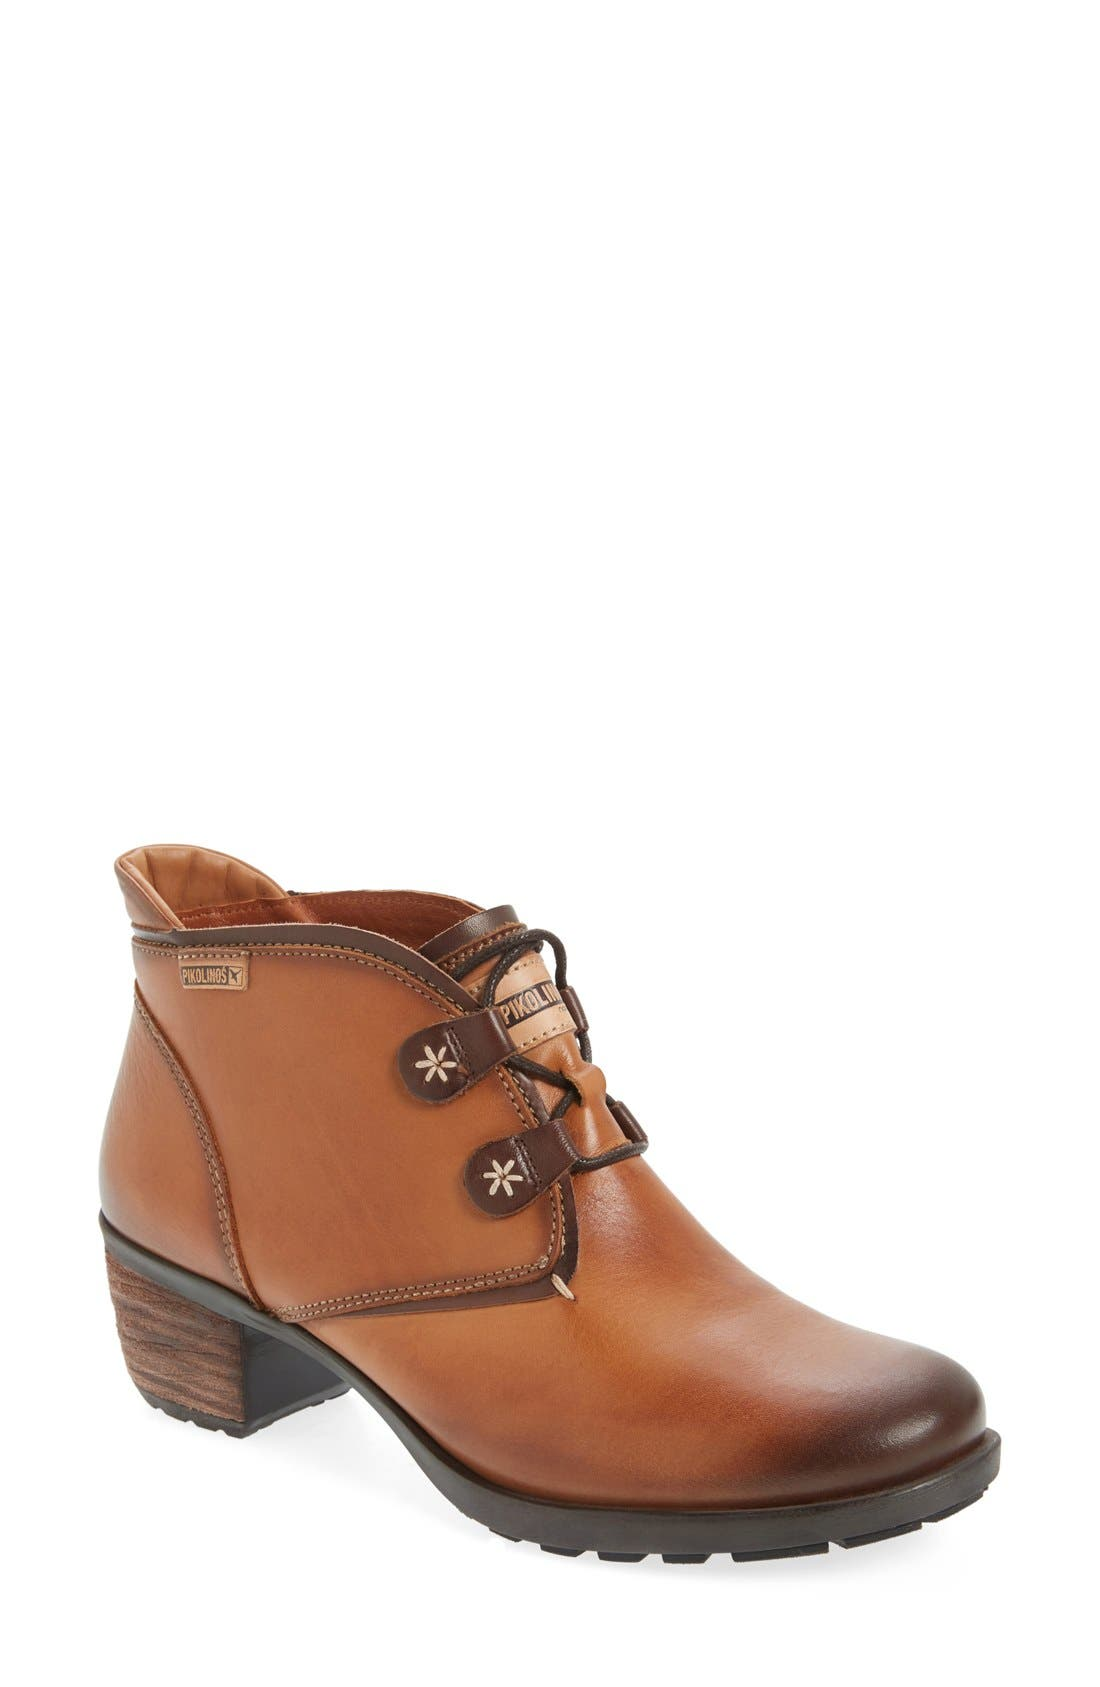 'Le Mans' Stack Heel Bootie,                             Main thumbnail 1, color,                             220